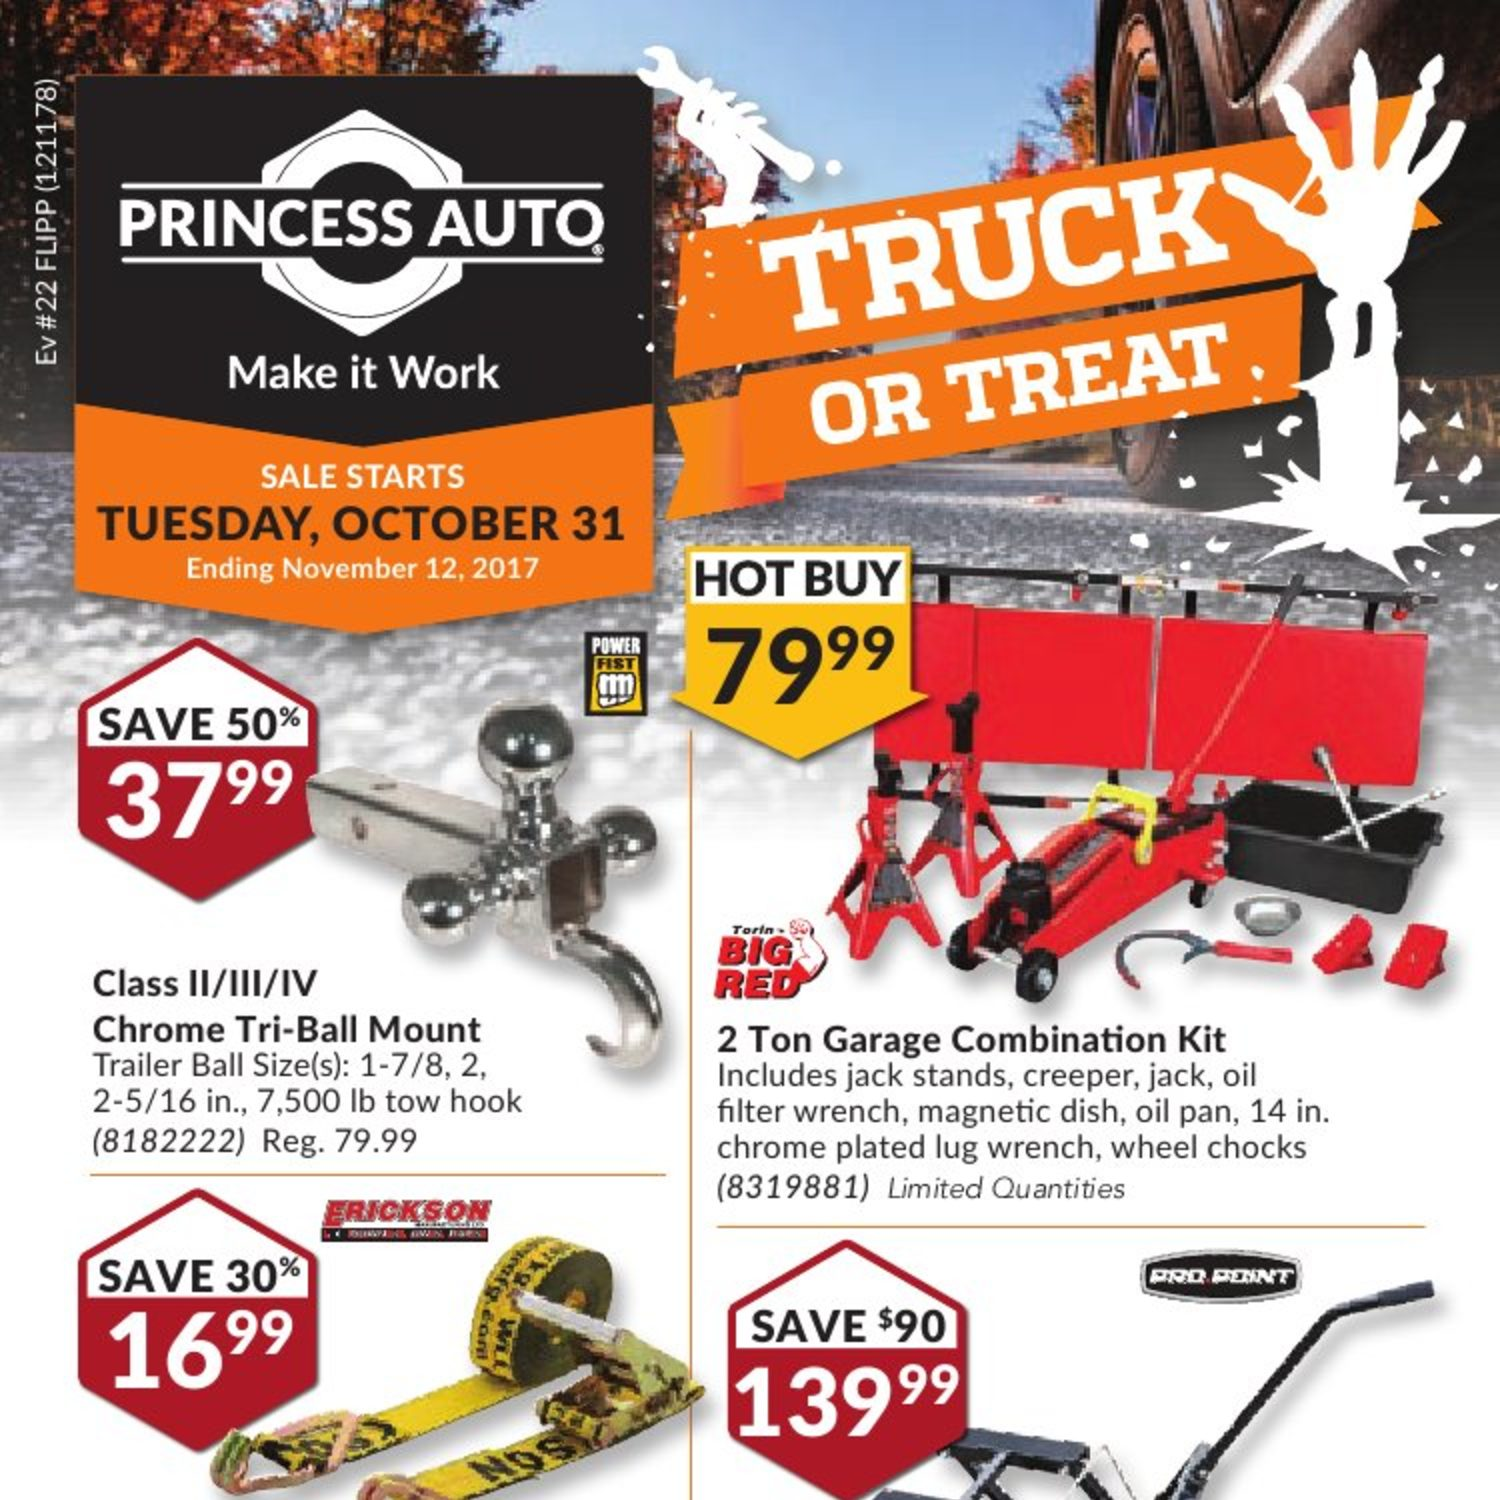 Princess Auto Weekly Flyer Truck or Treat Oct 31 – Nov 12